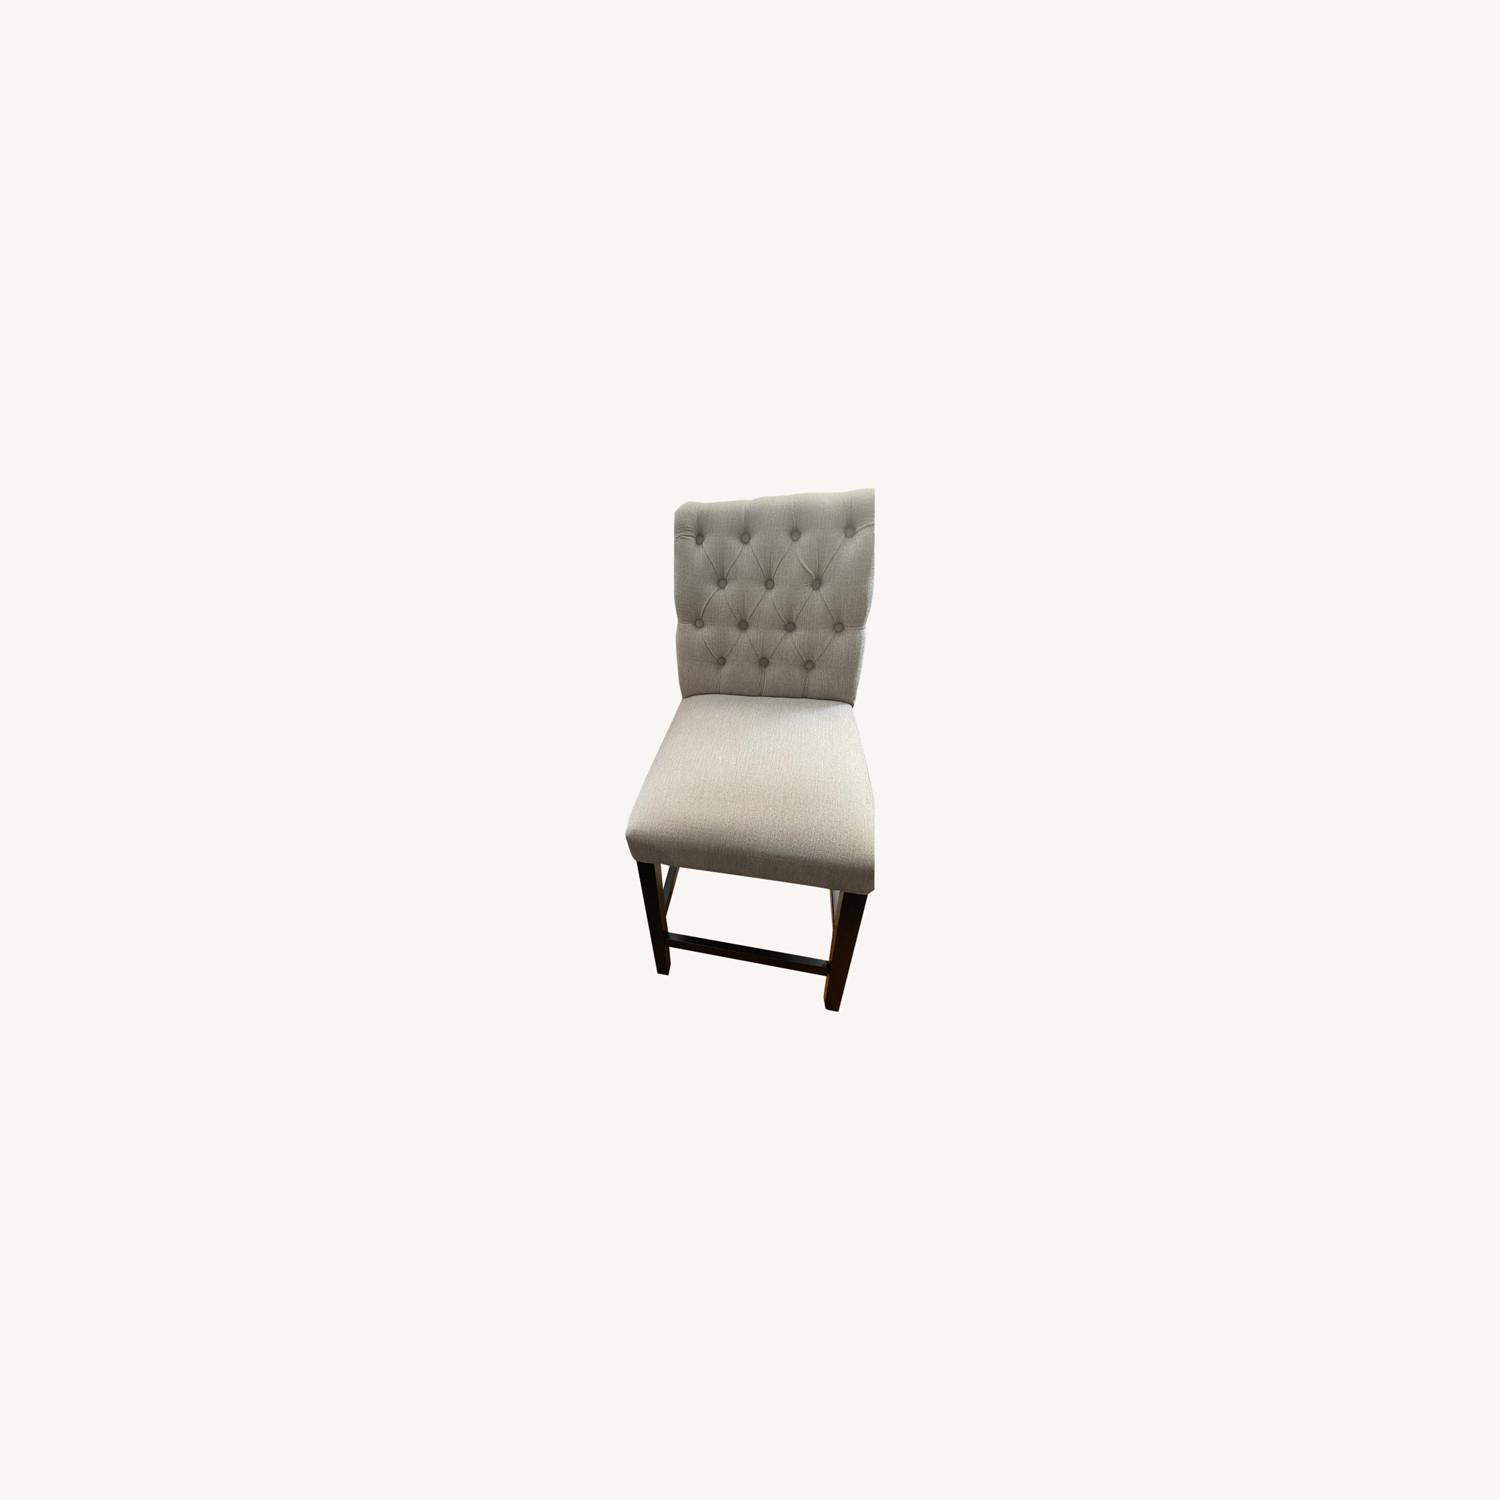 Ashley Furniture Counter Height Dining Chairs, 2 - image-0